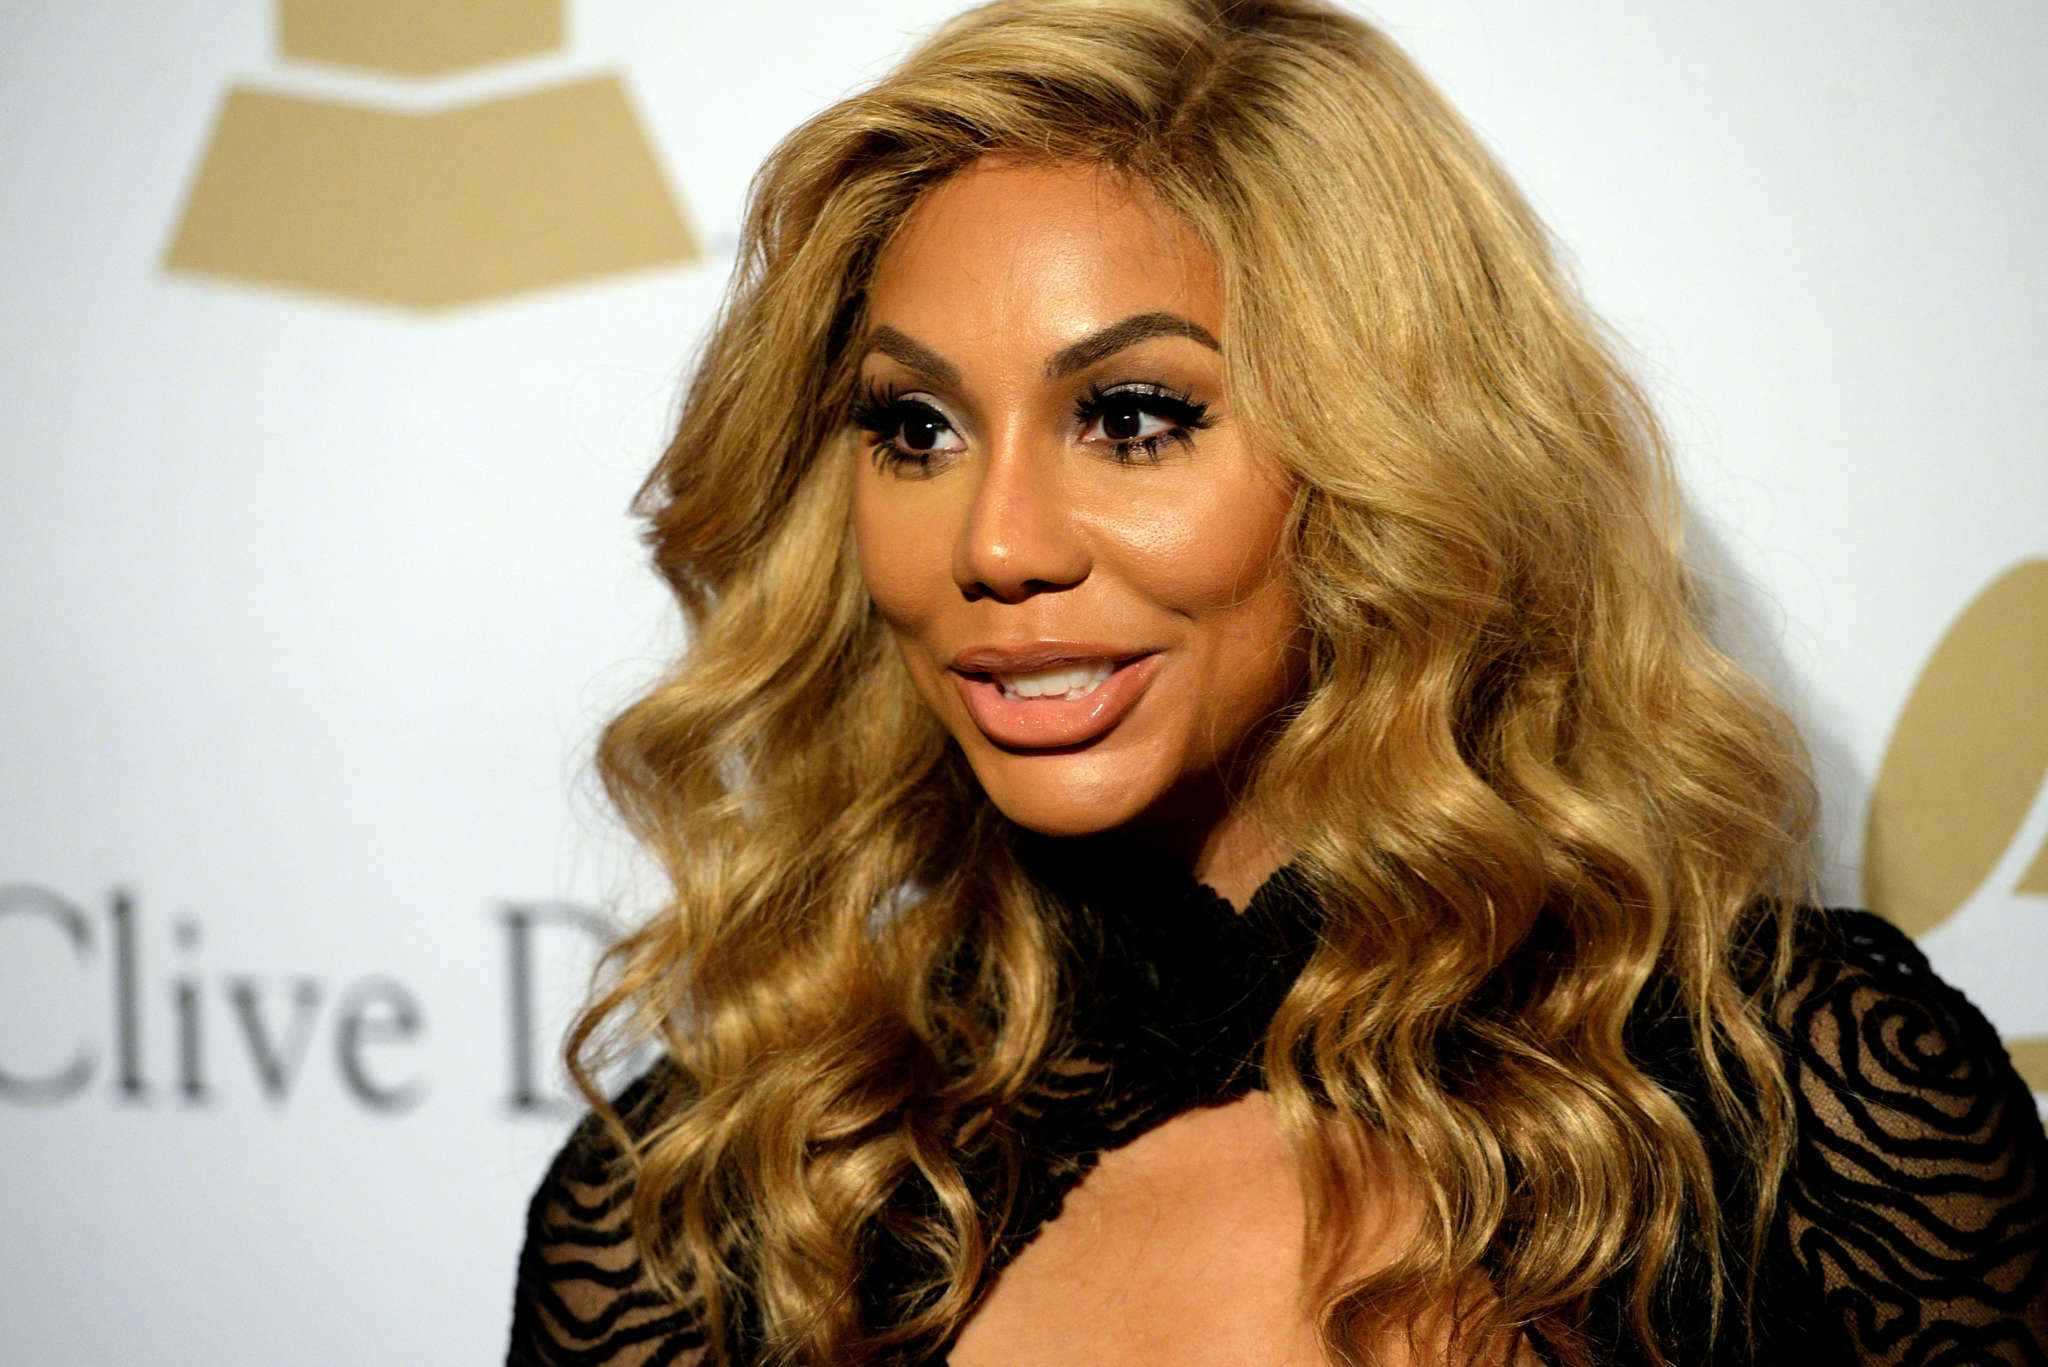 Tamar Braxton Reveals Details On Her New WEtv Series, 'Get Ya Life'